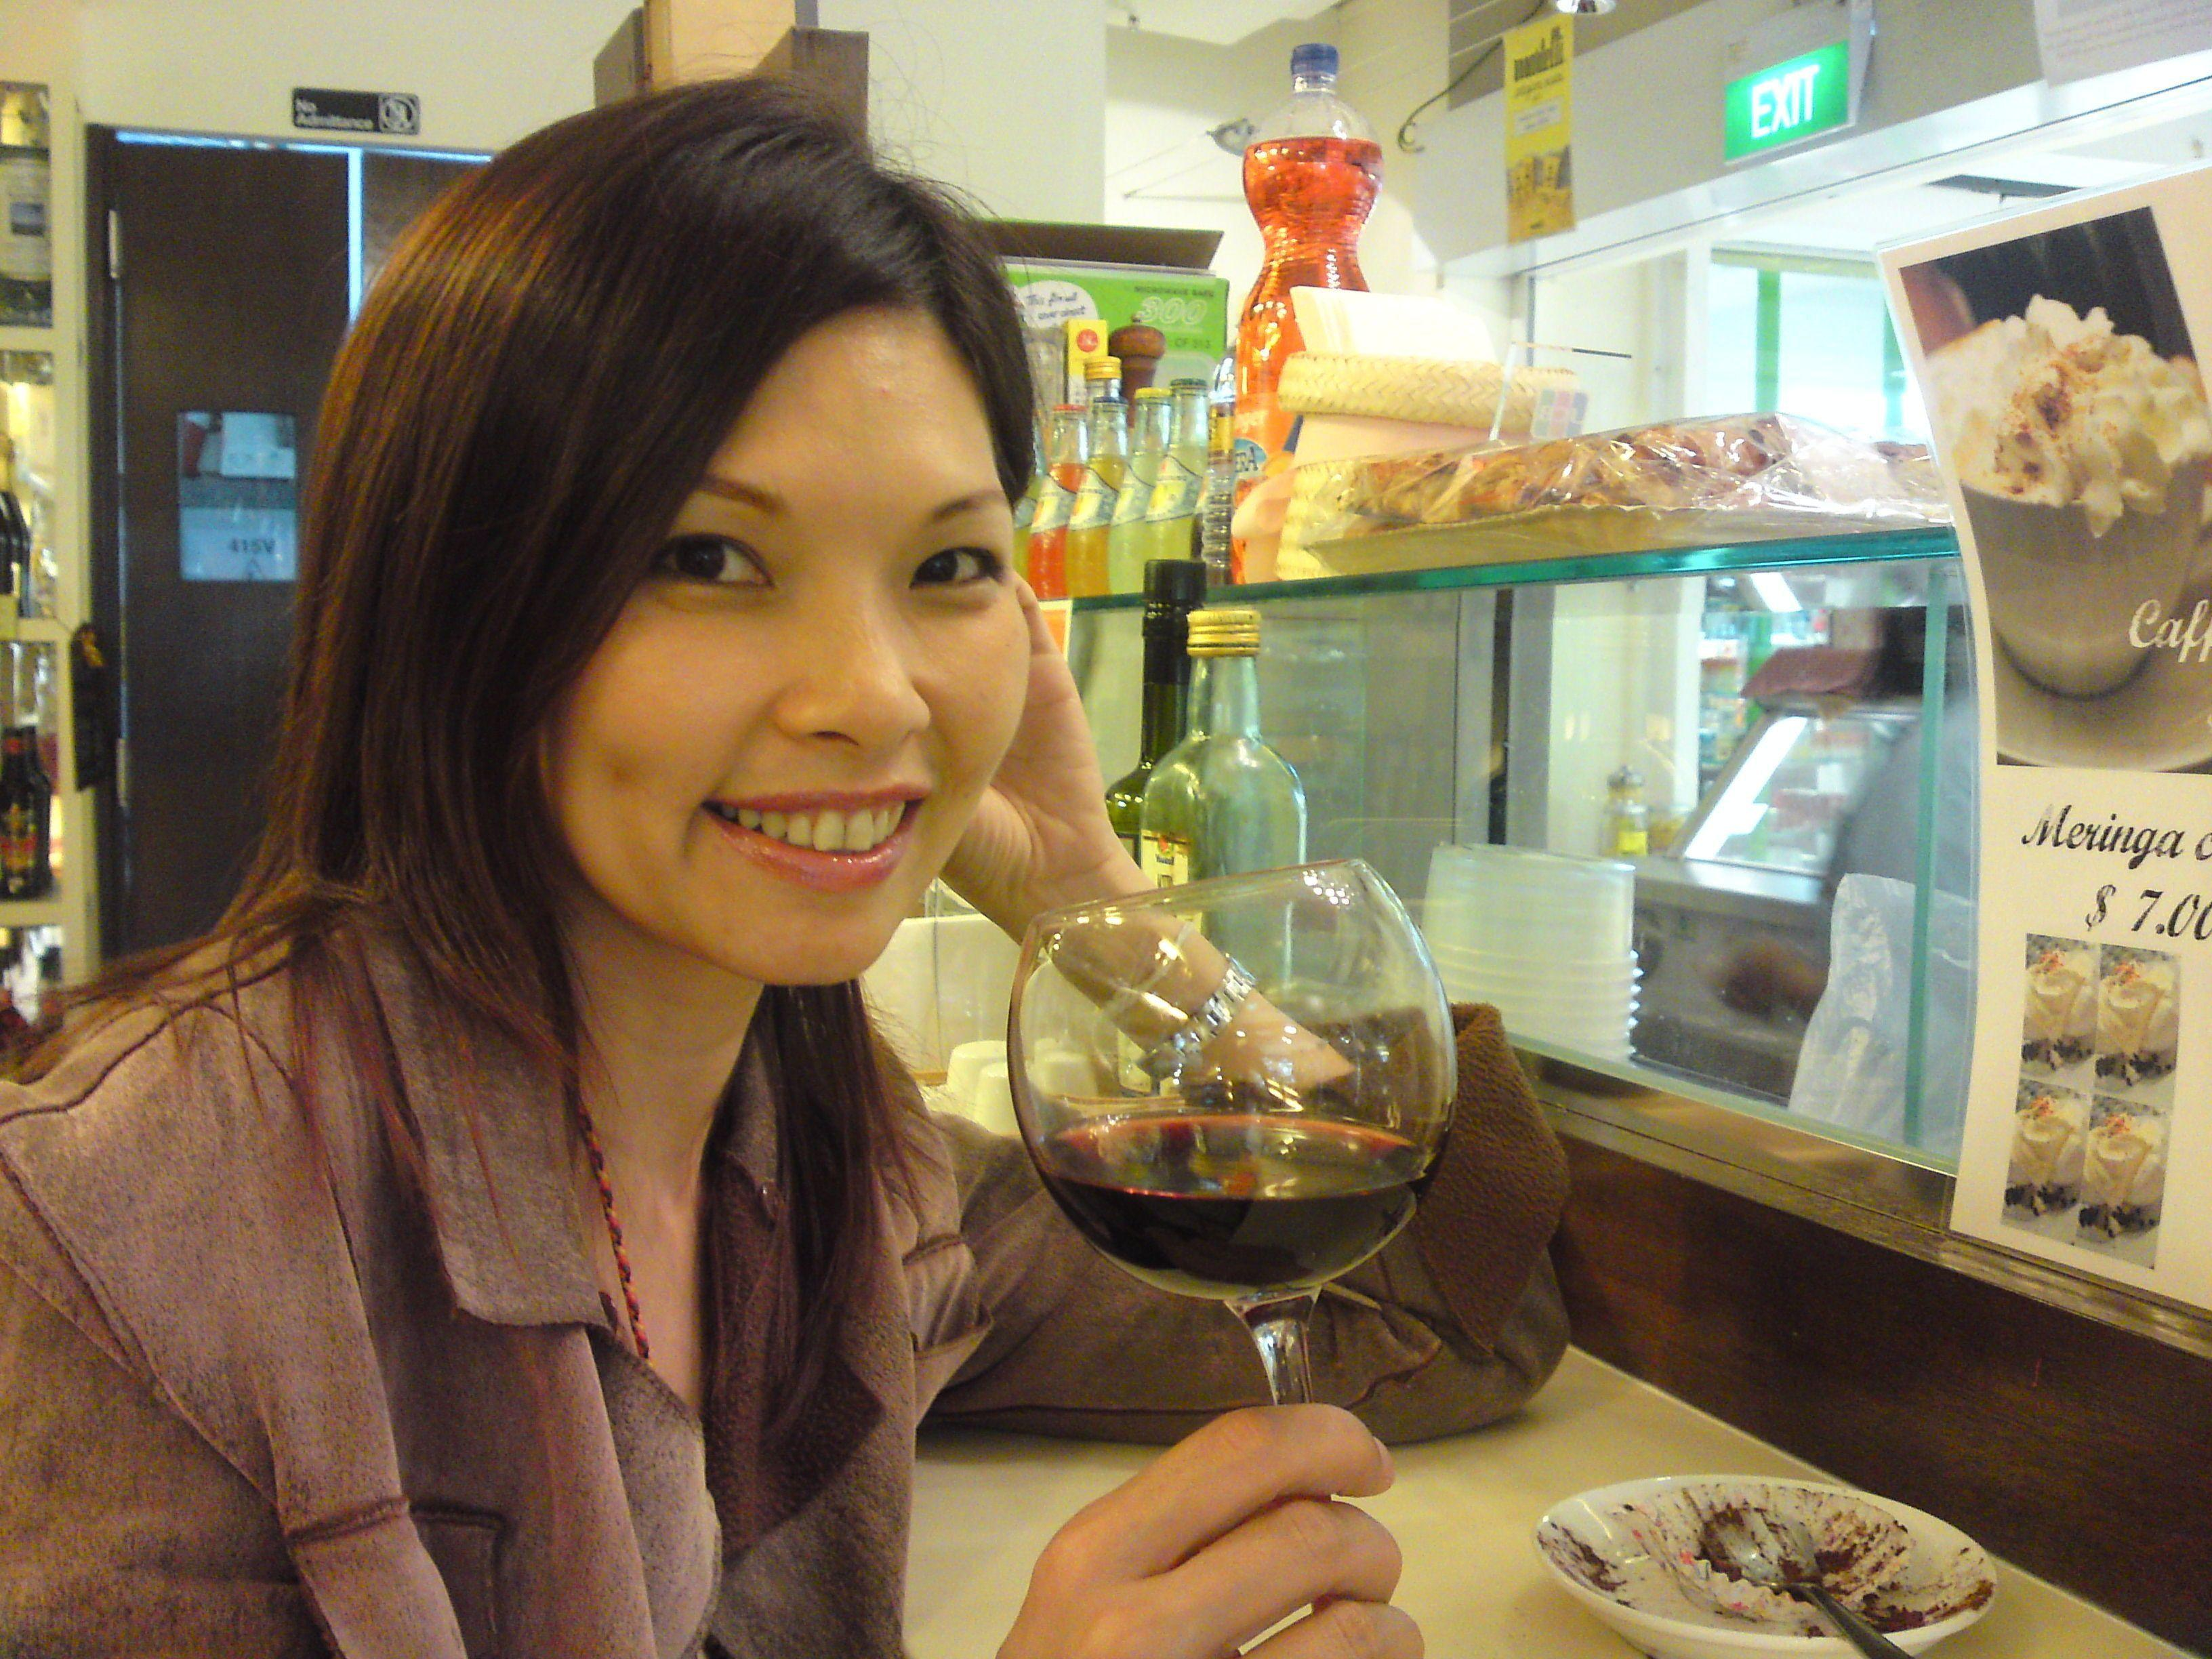 singapore expat and dating